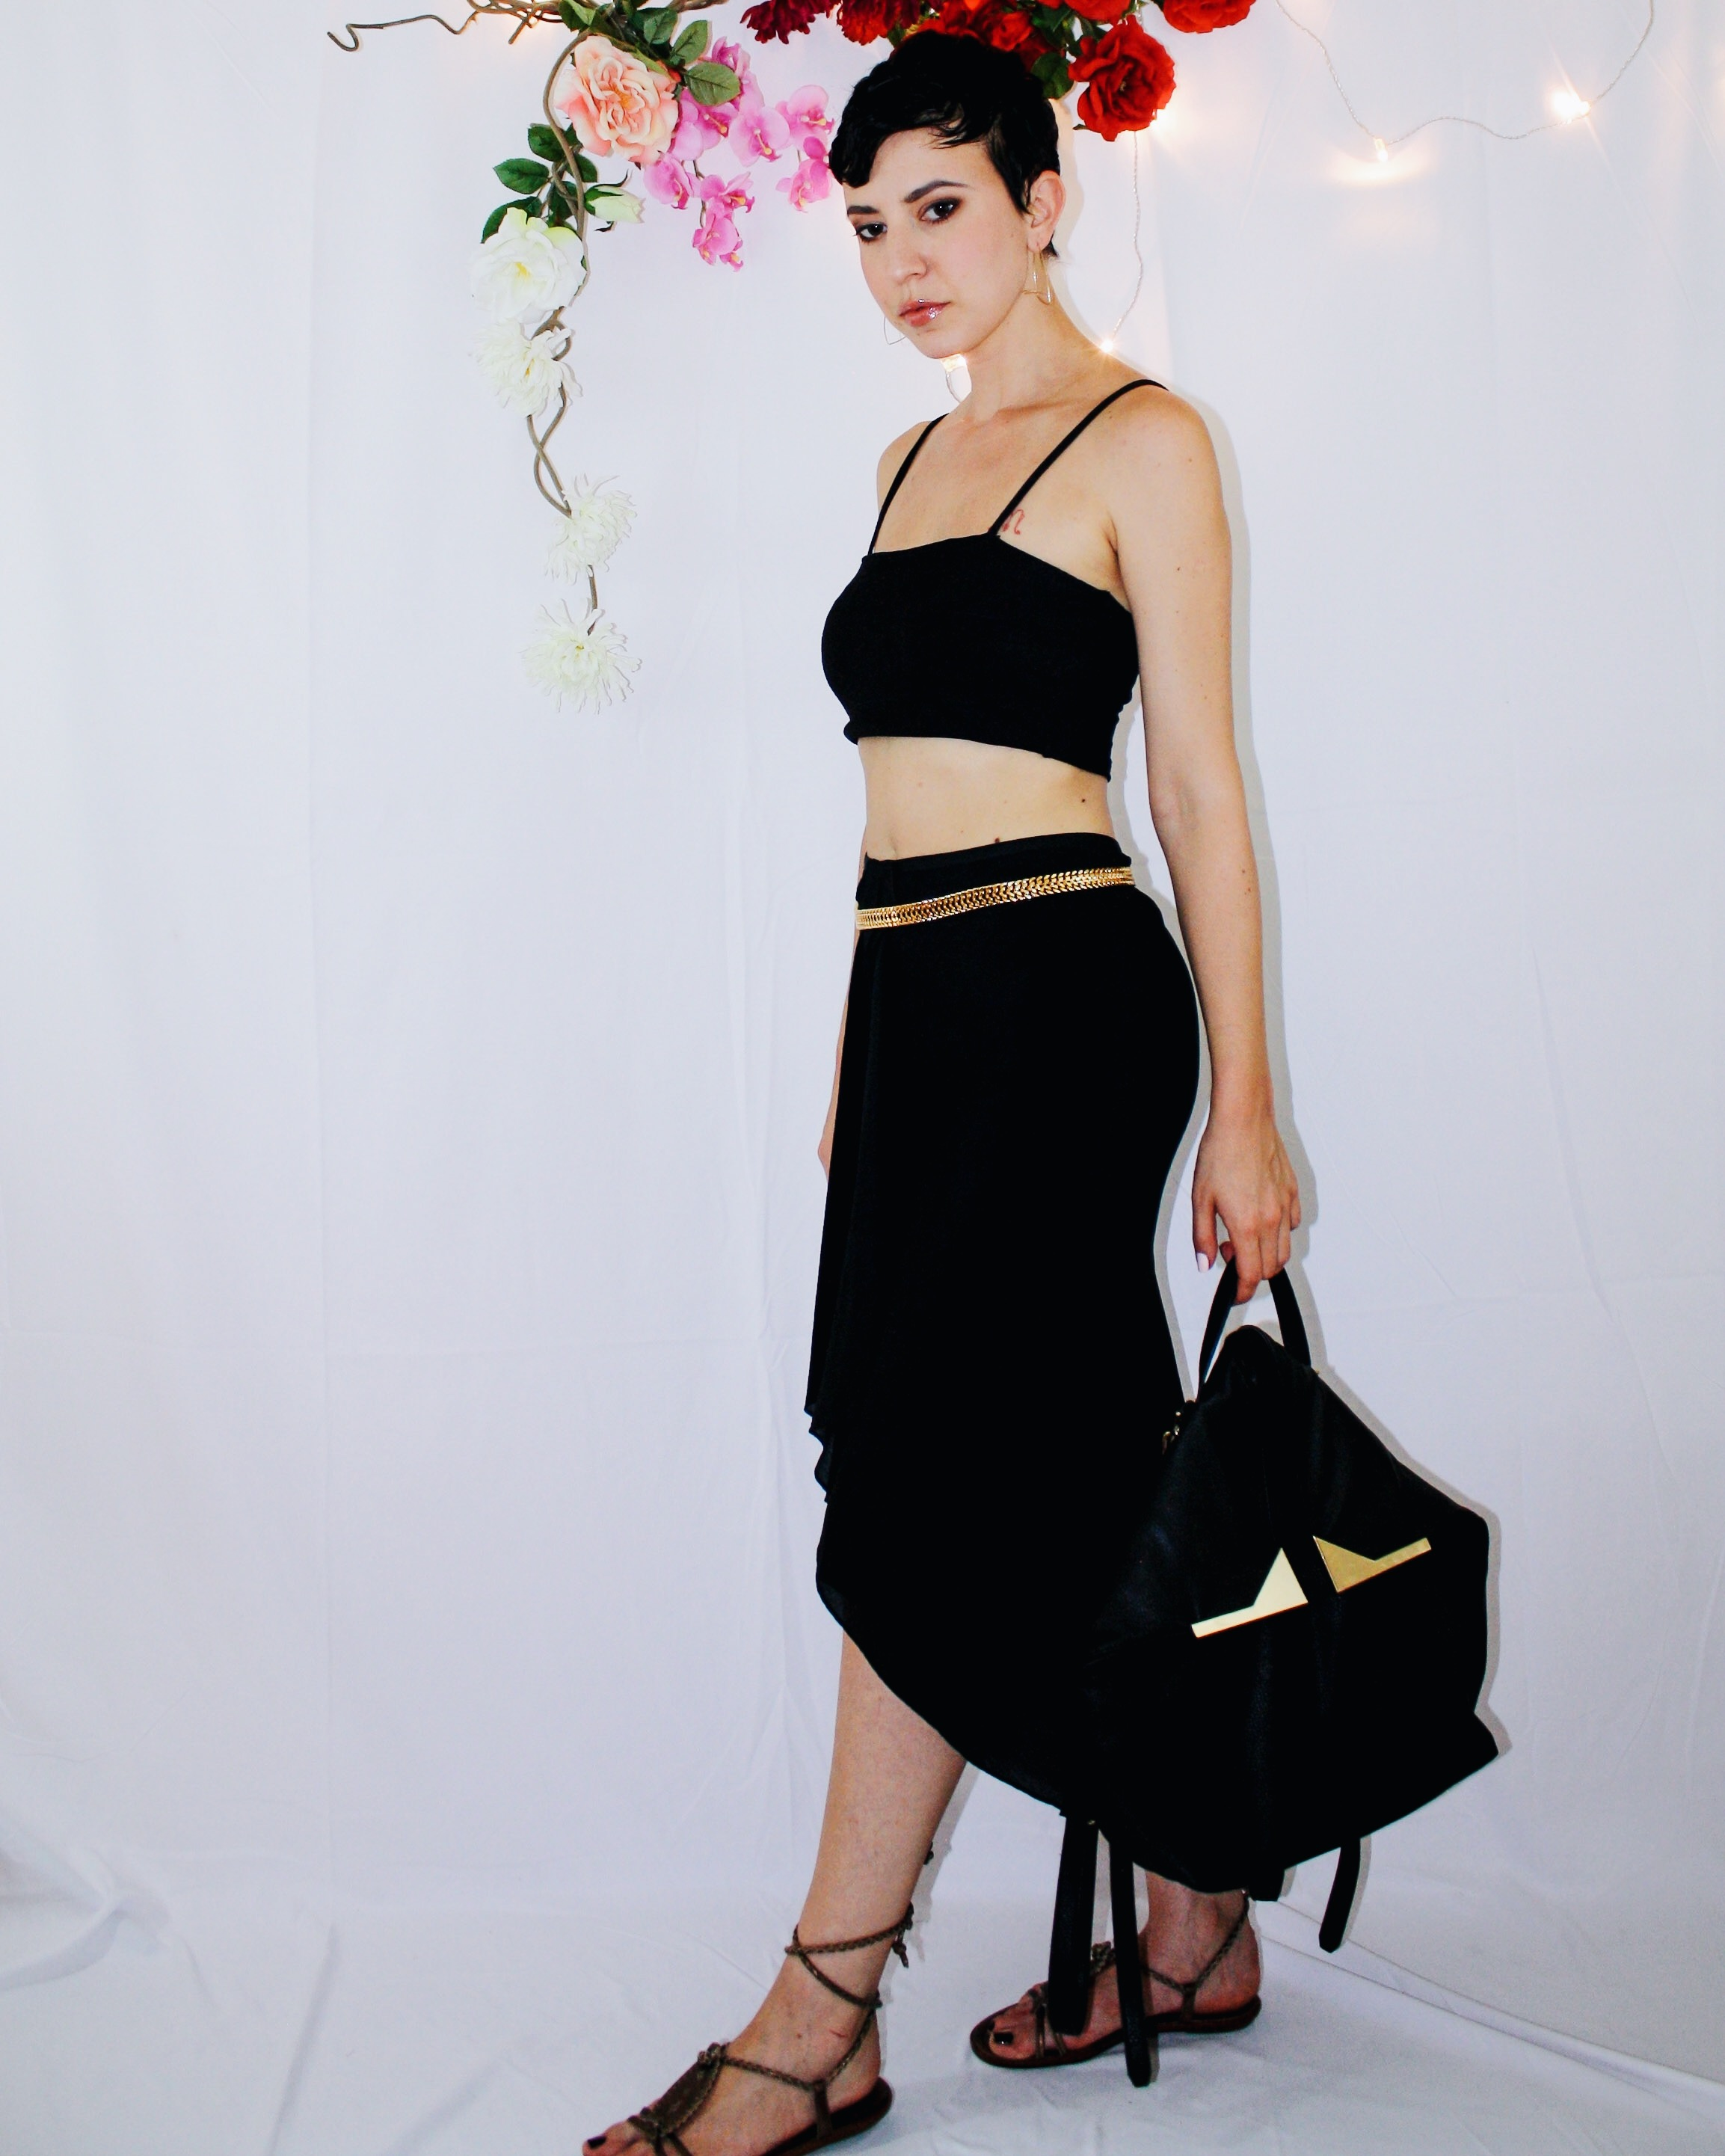 heatwave outfit waterfall skirt black crop top lace up sandal backpack 5